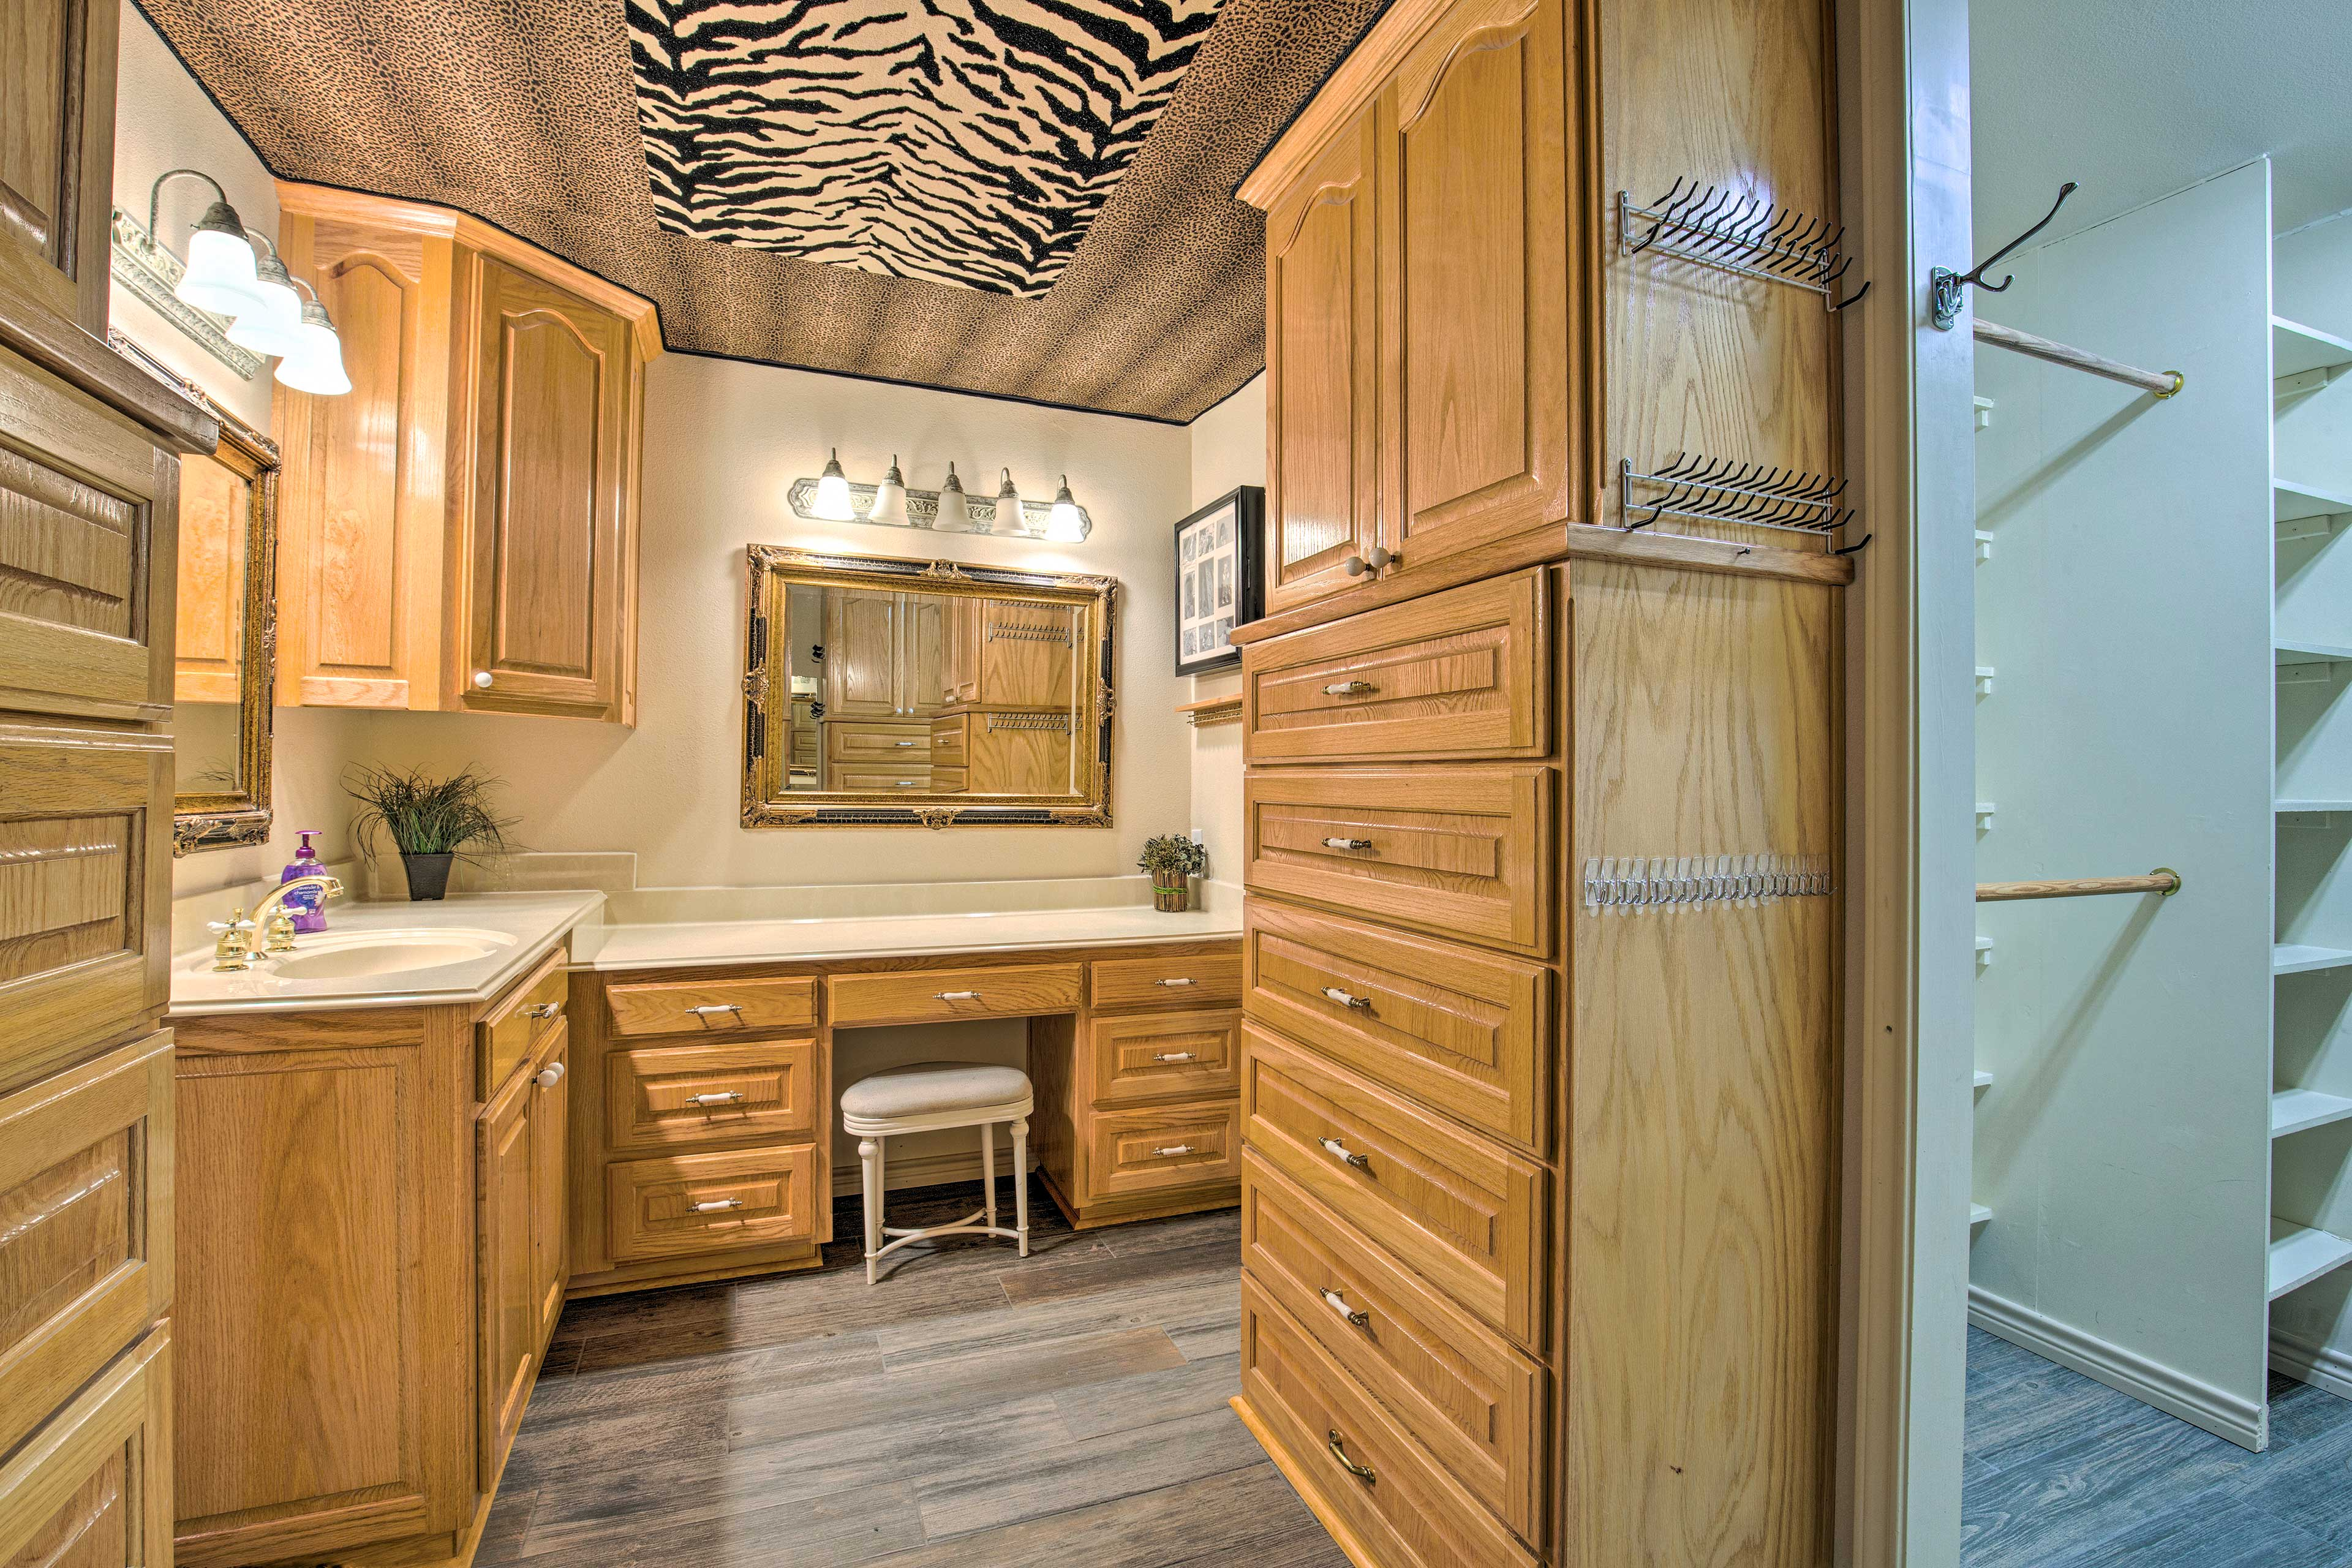 The second spacious bathroom boasts ample space with a vanity.